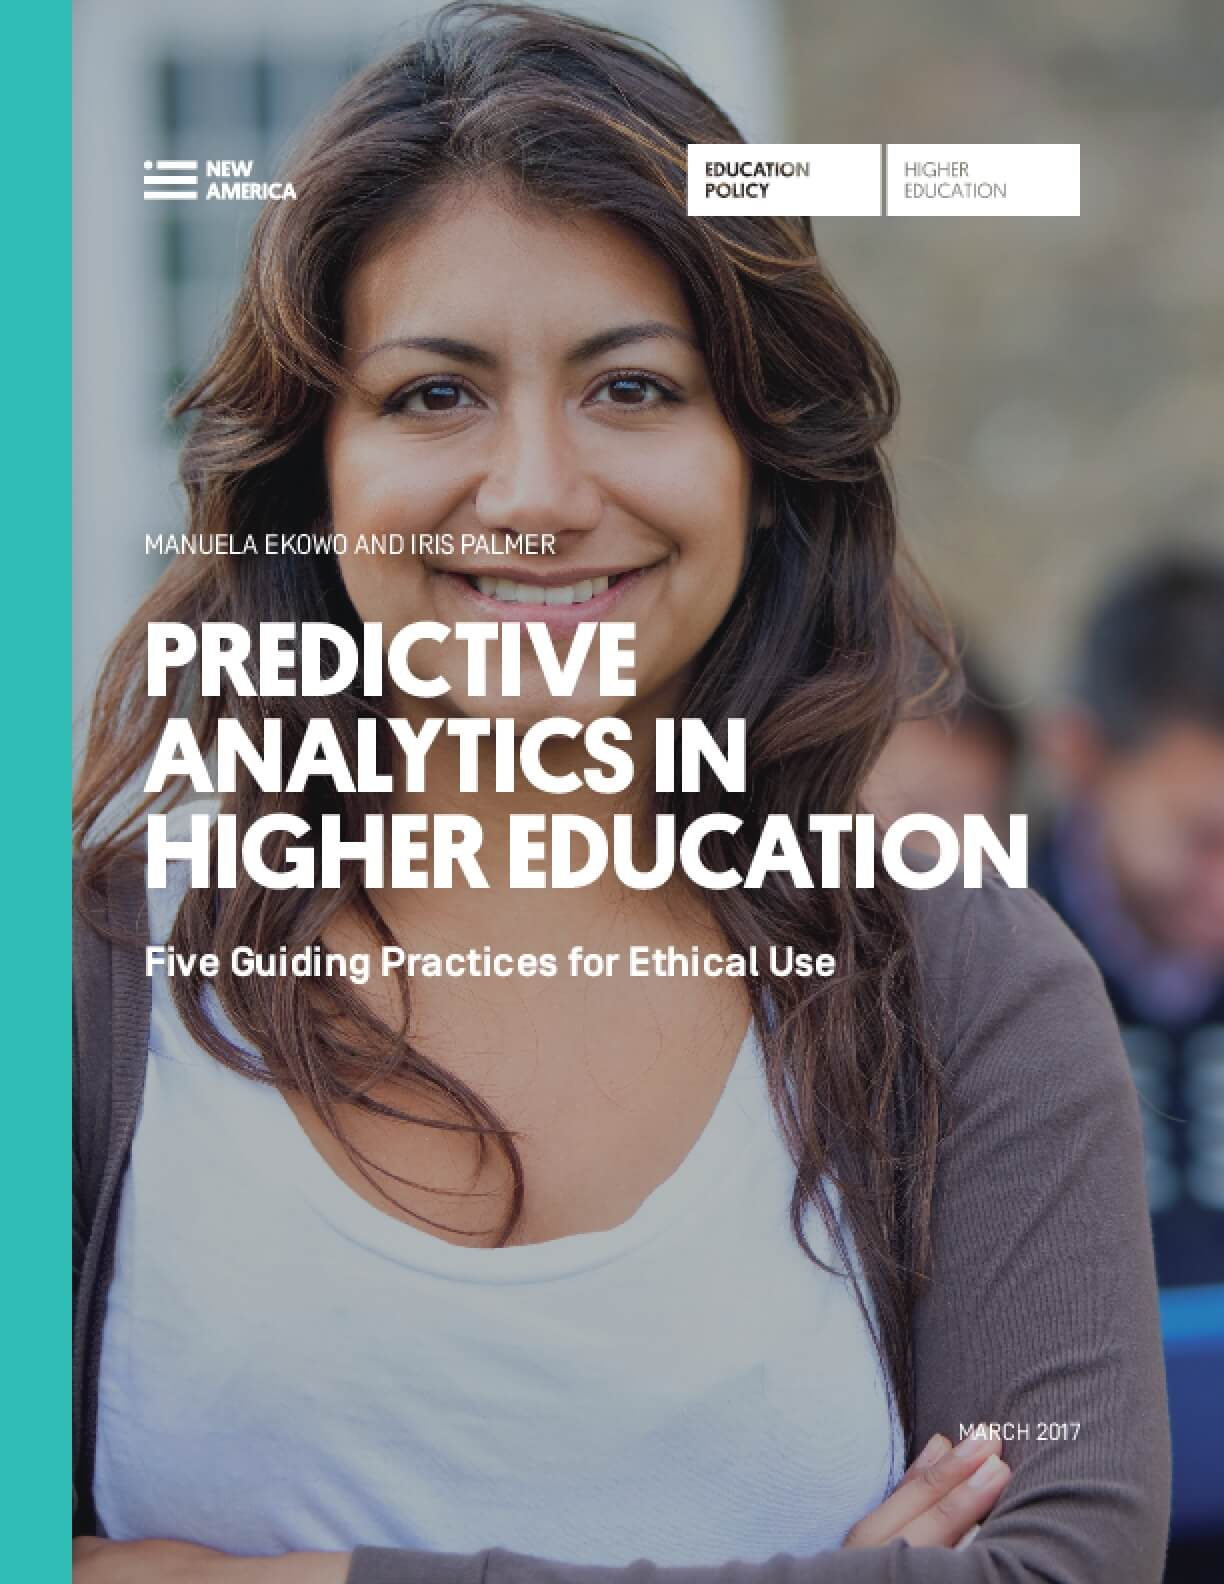 Predictive Analytics In Higher Education: Five Guiding Practices for Ethical Use